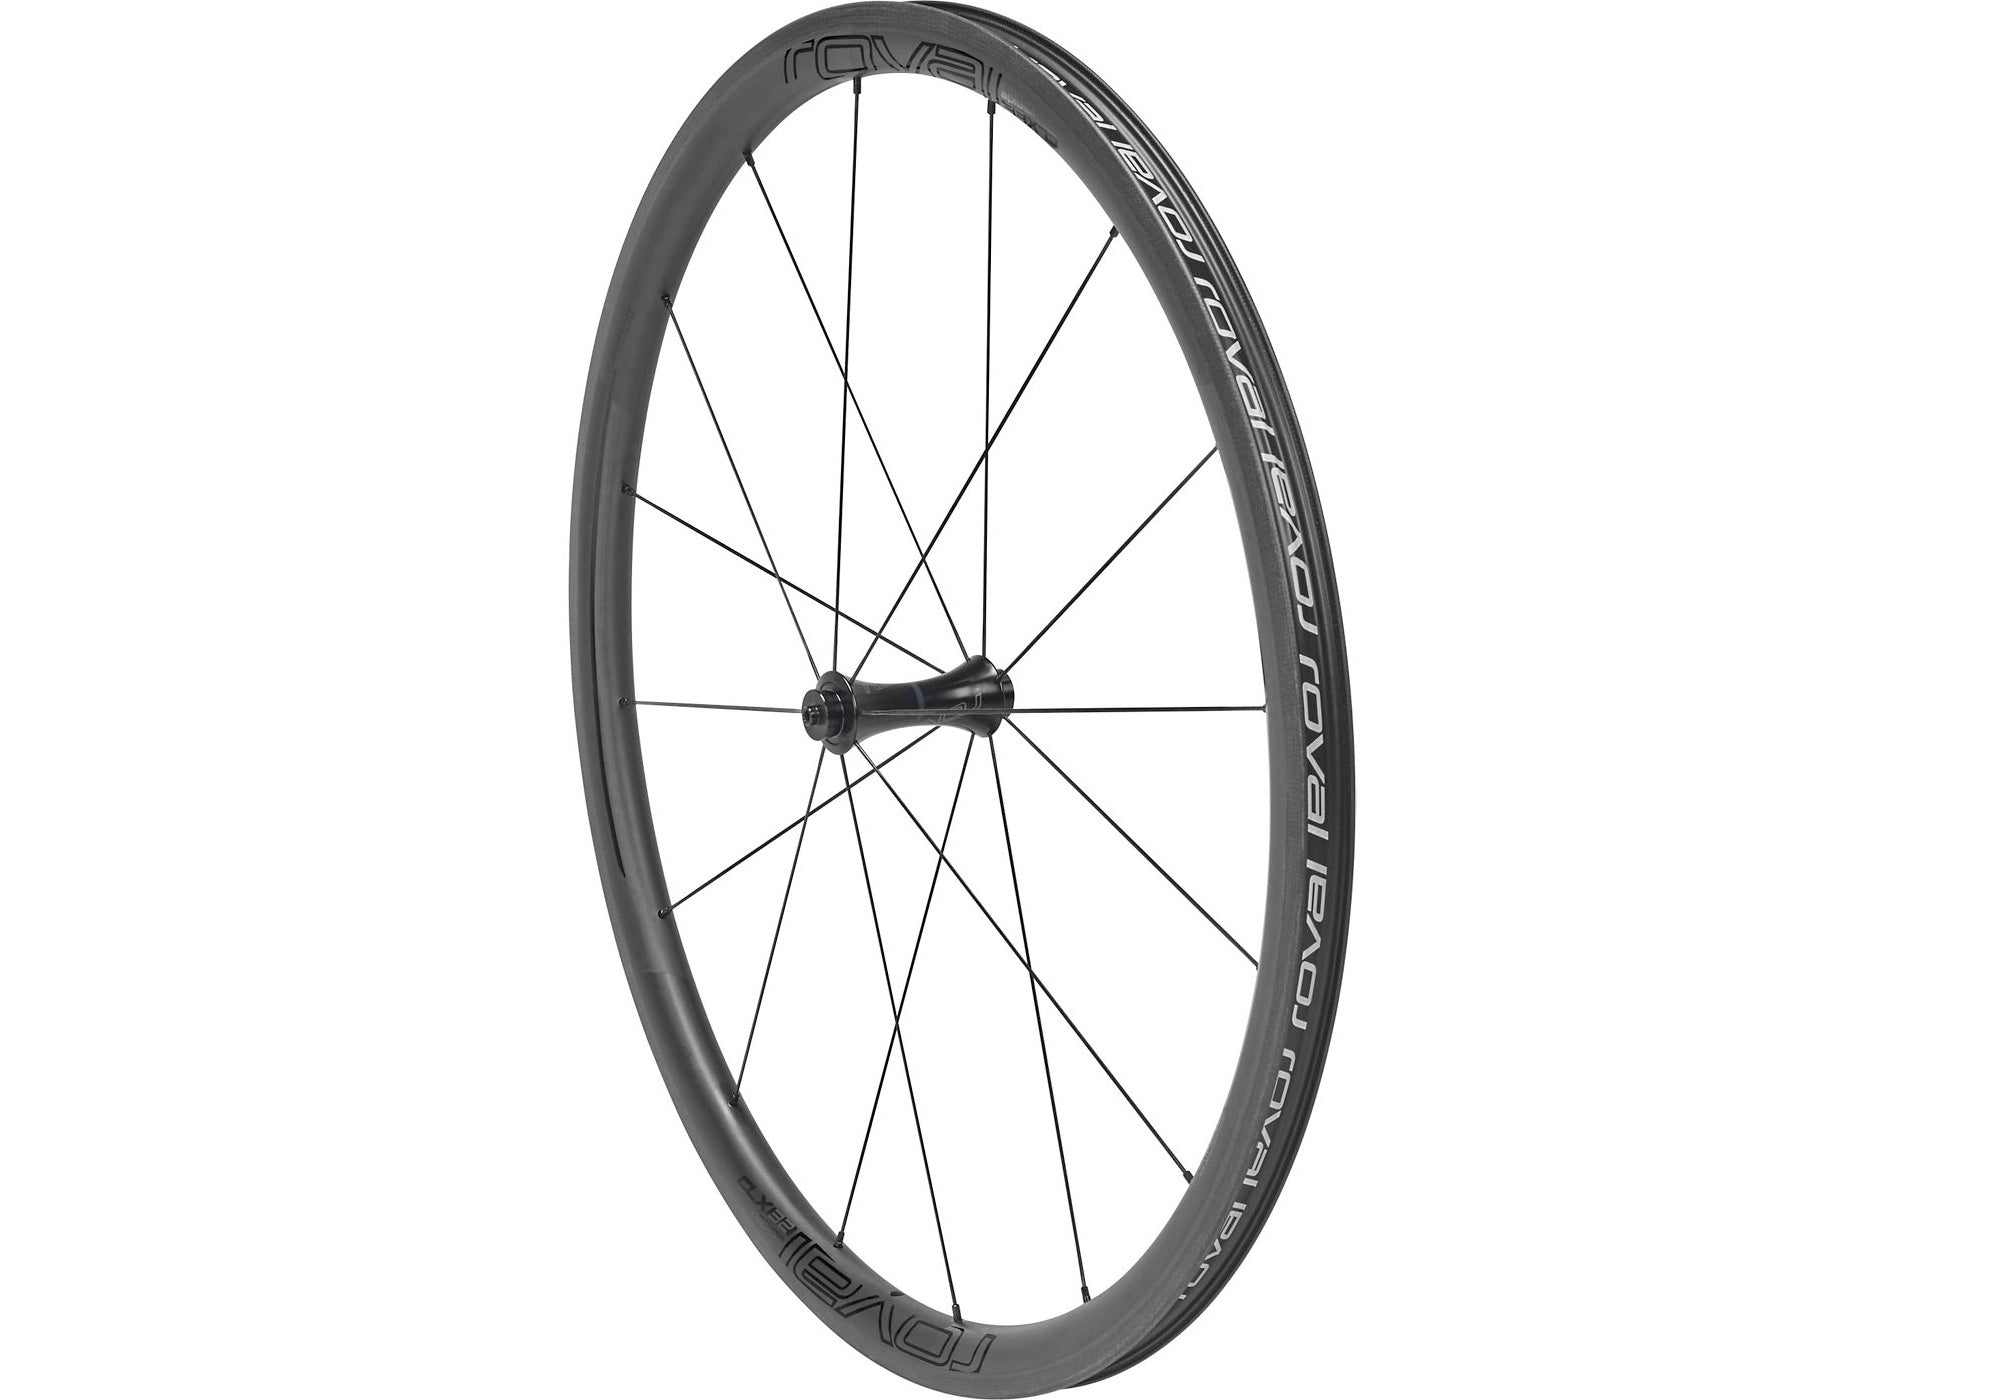 Specialized Roval CLX 32 Front Wheel, 700C, Carbon Clincher, Woolys Wheels Sydney